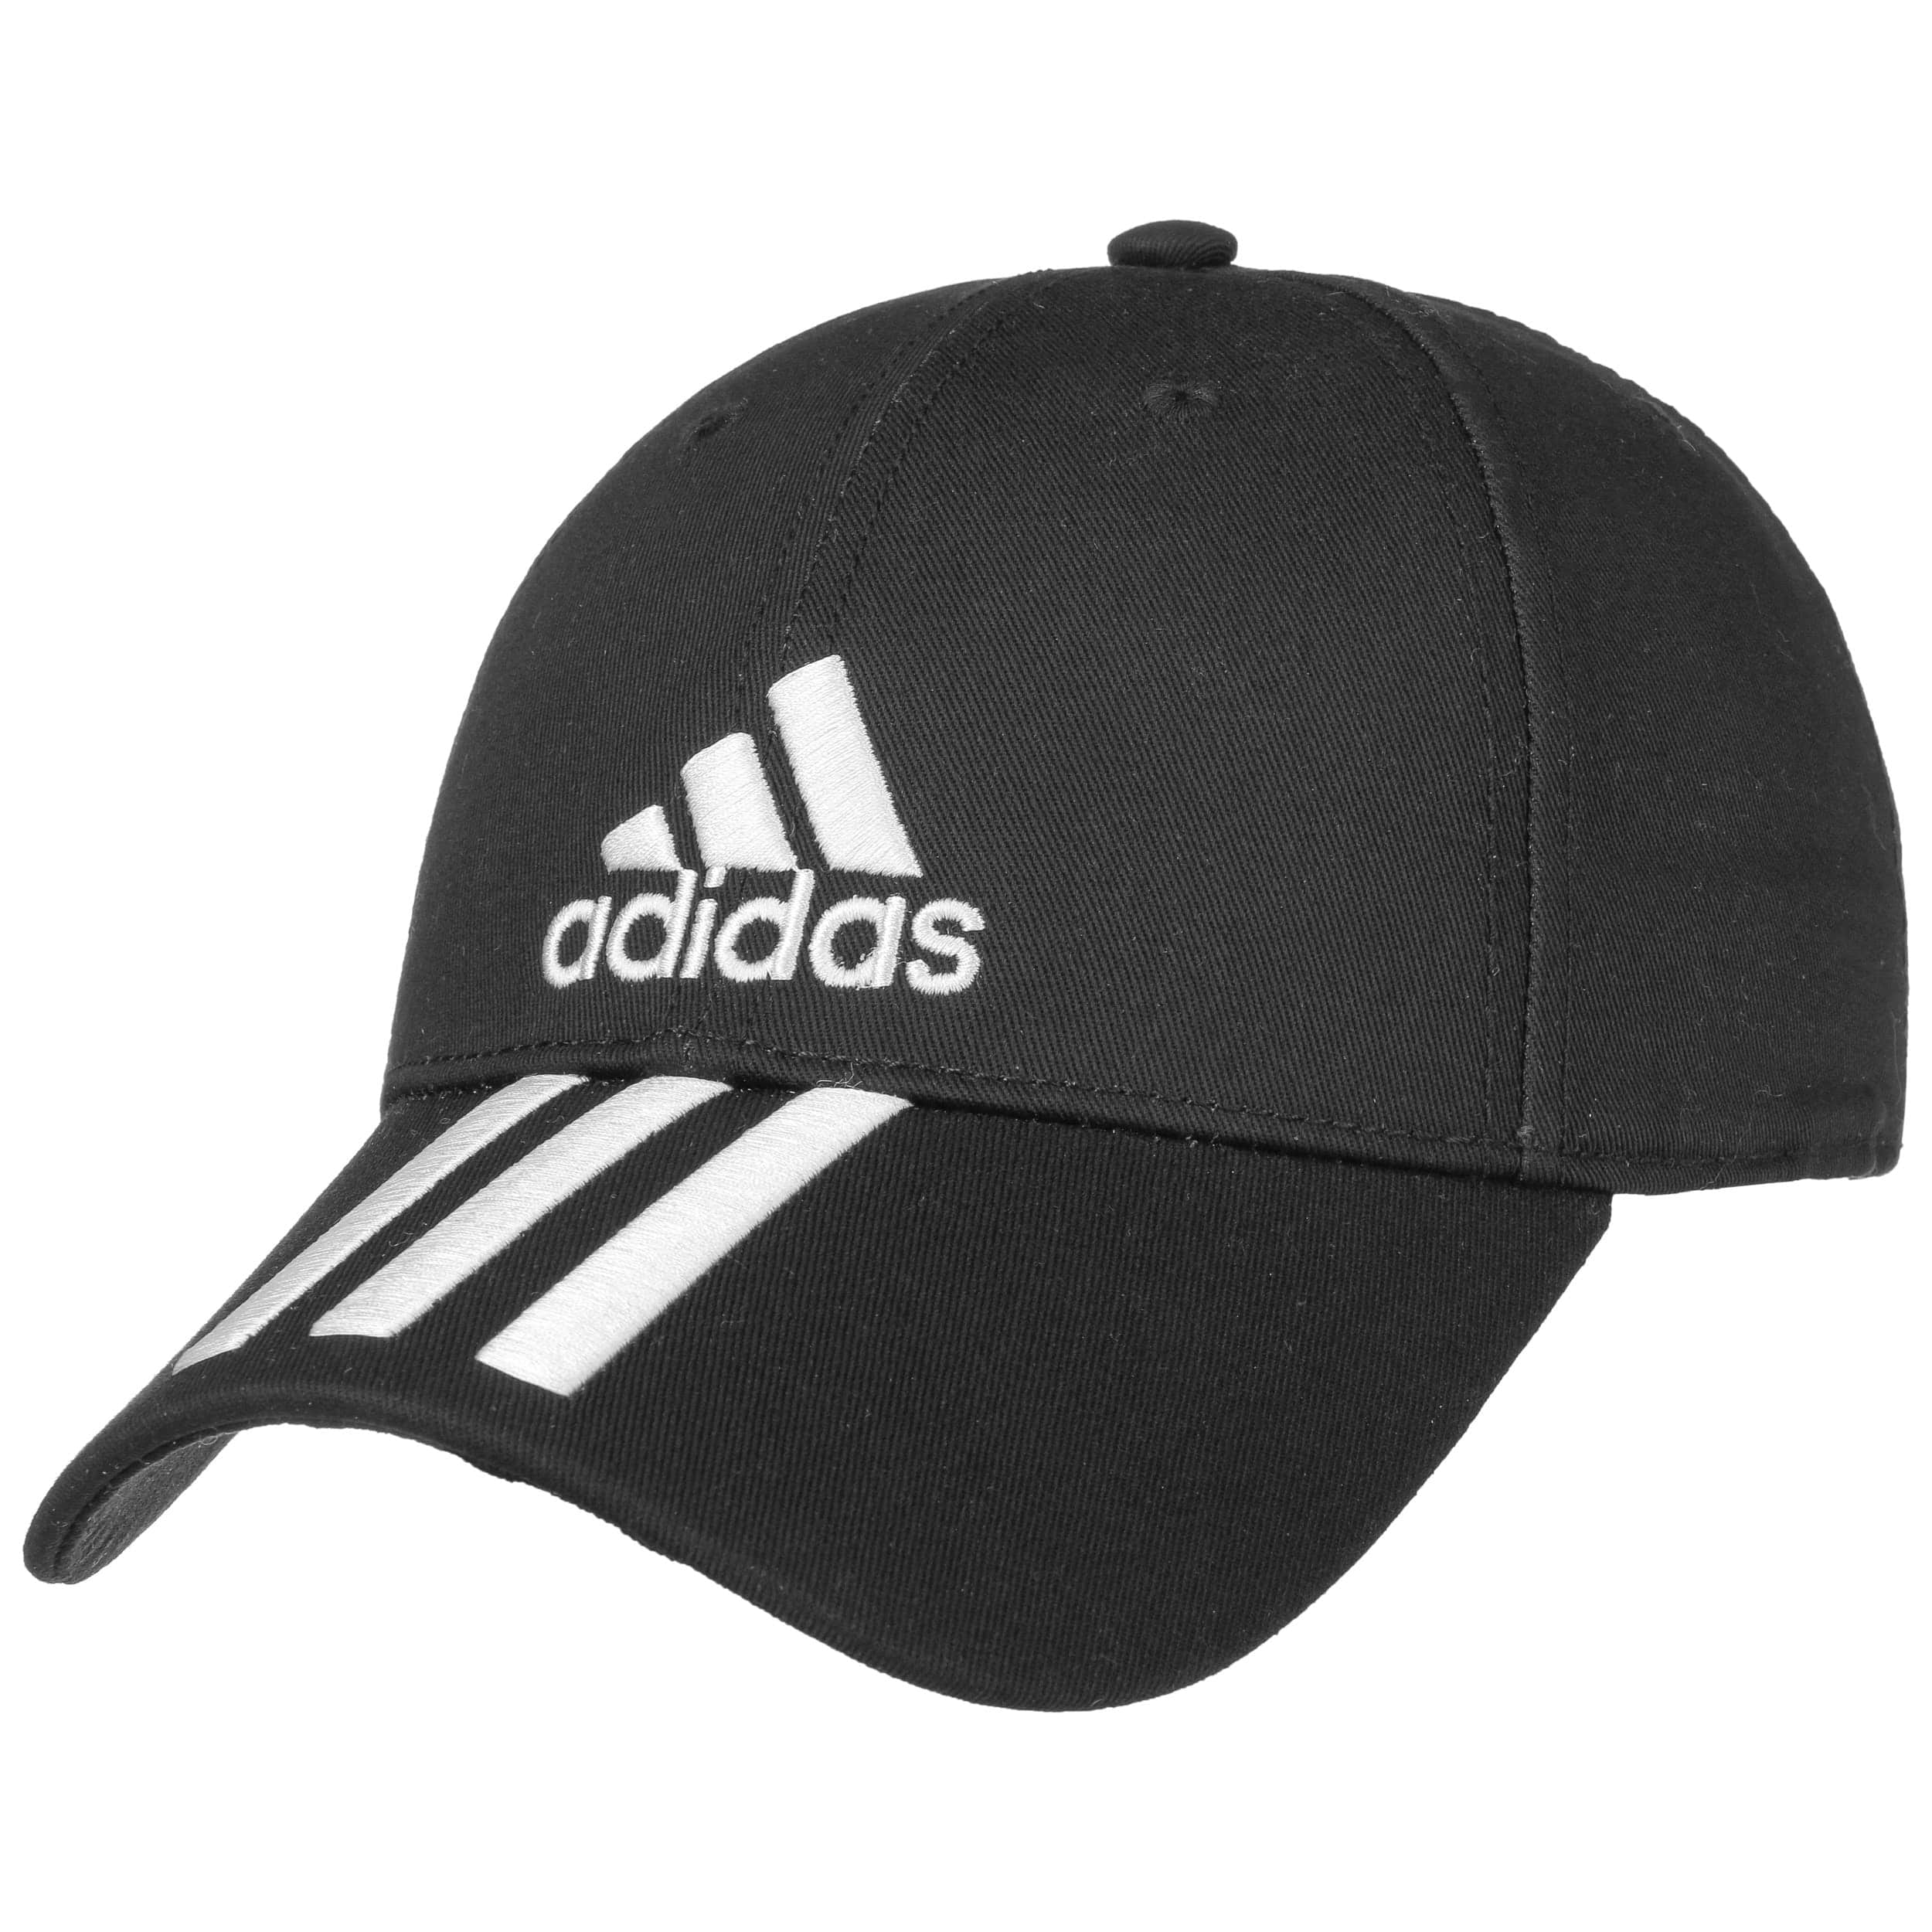 6P 3S Cotton Strapback Pet by adidas